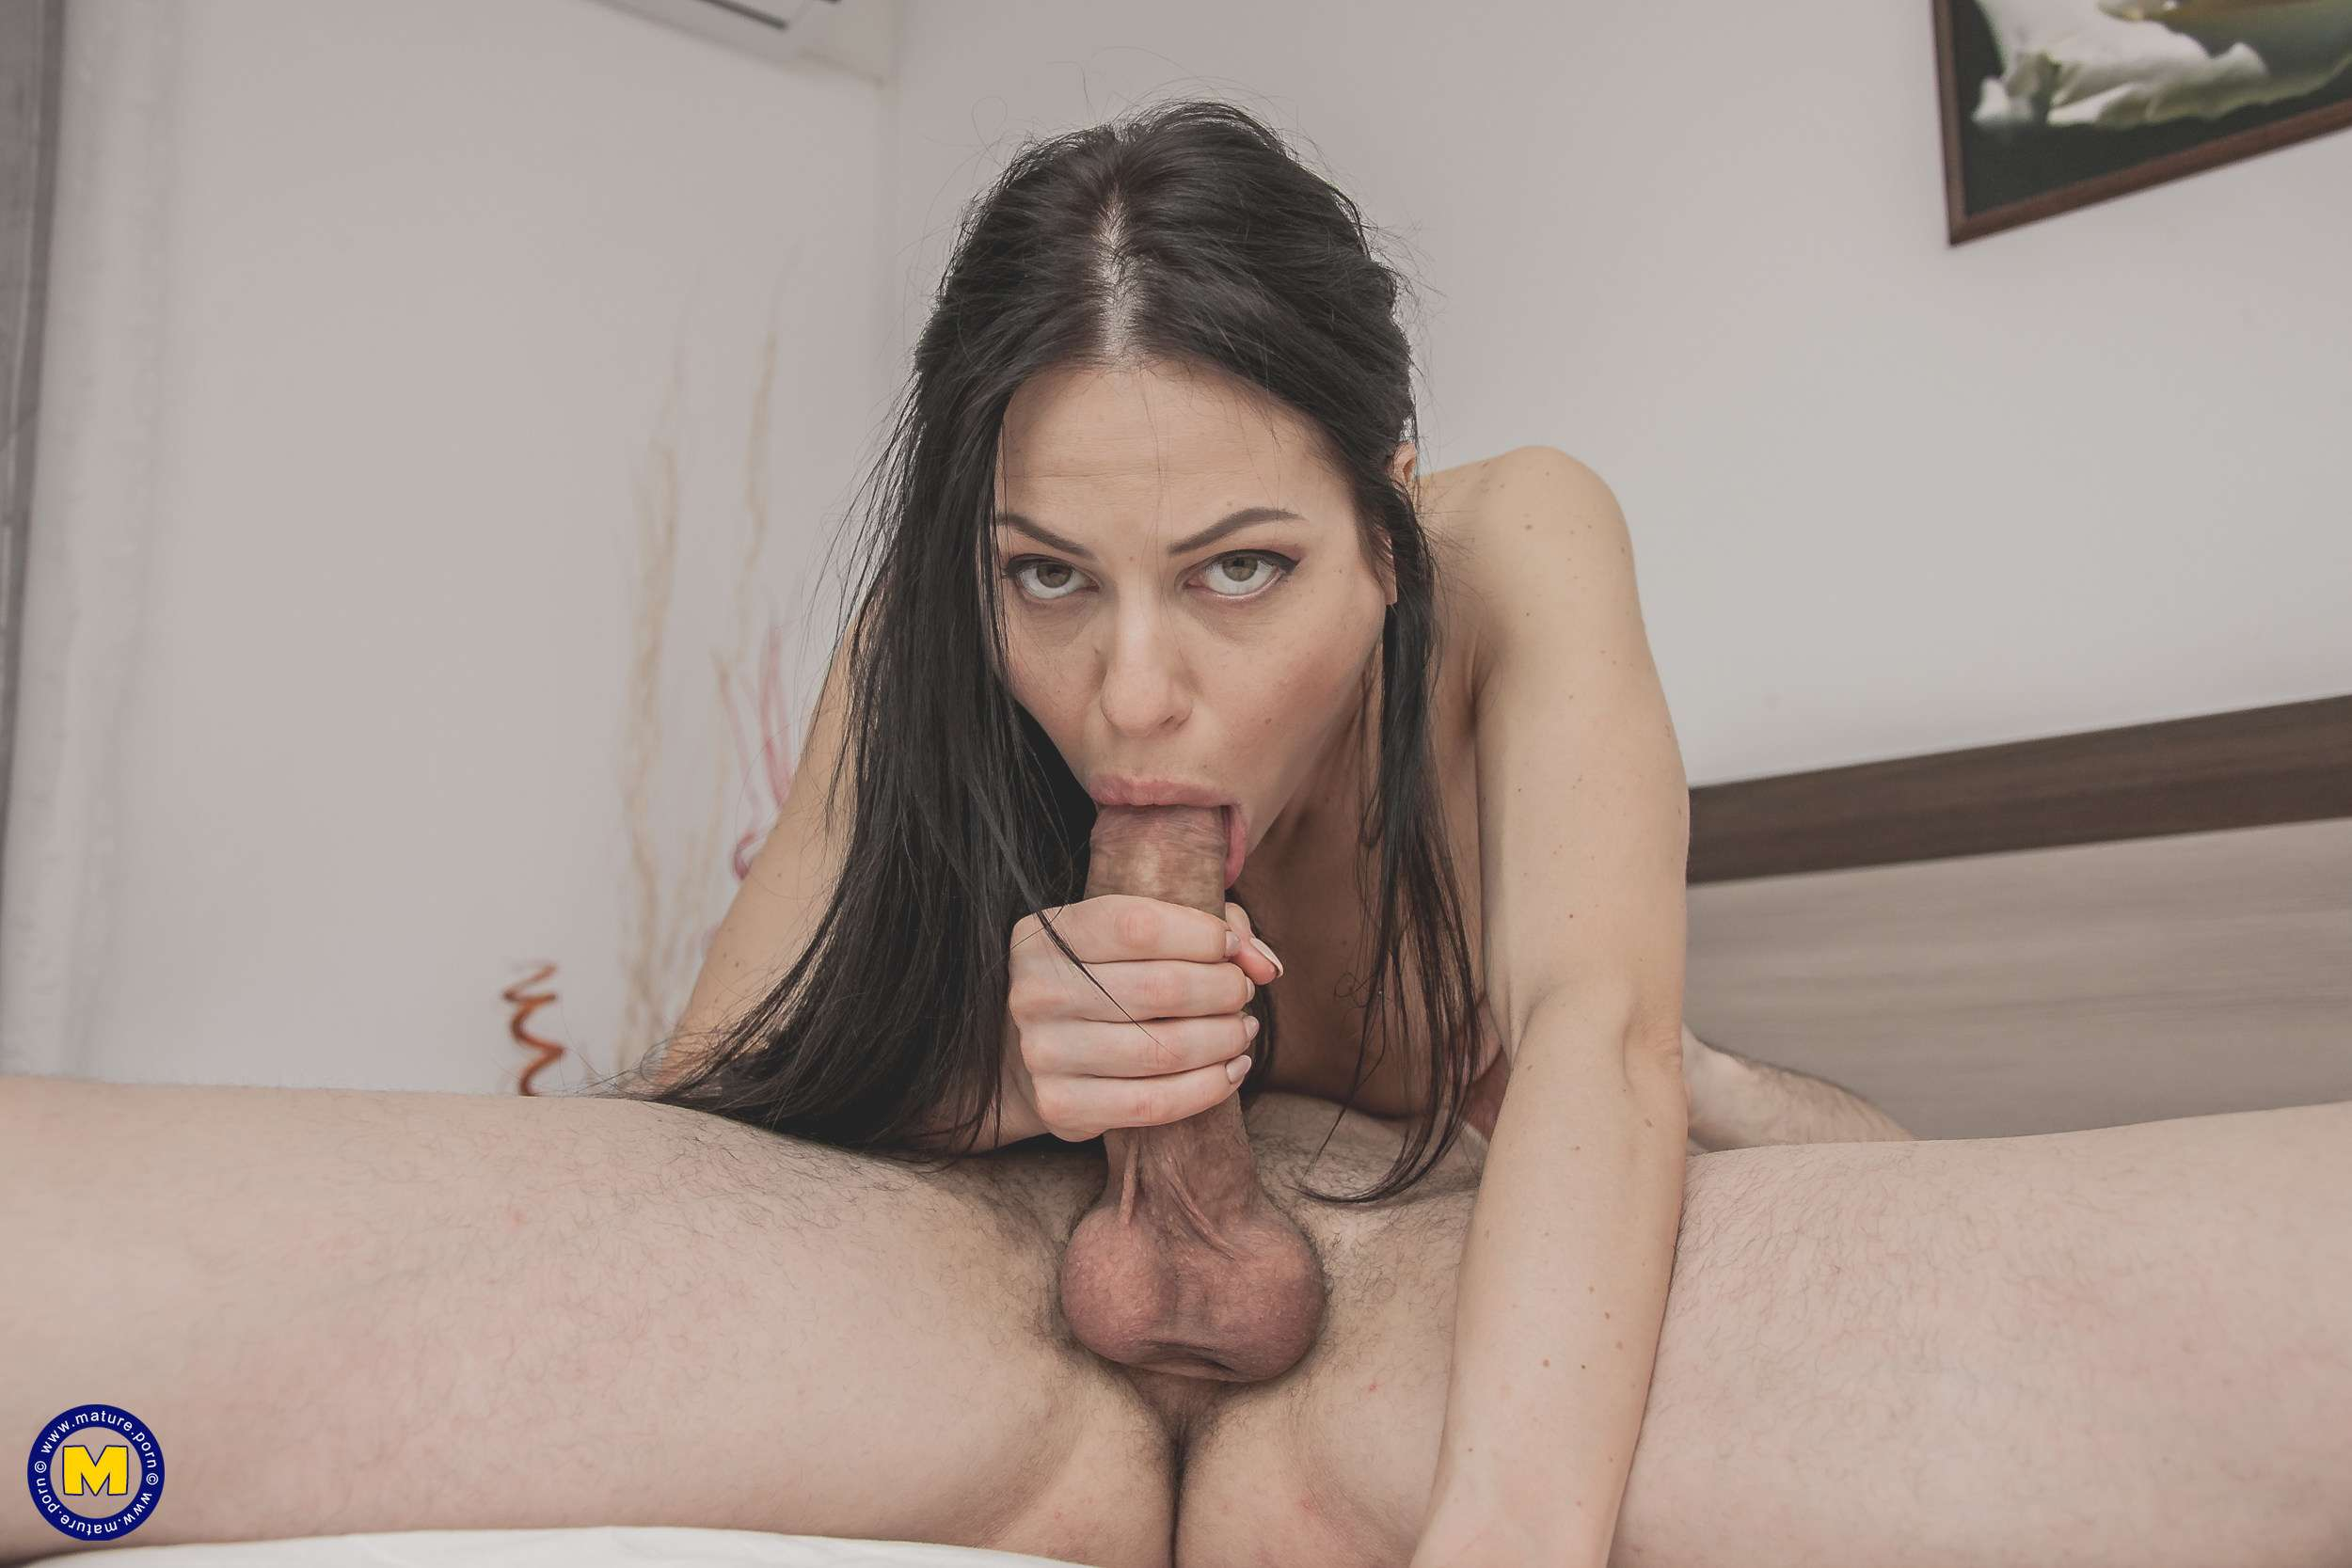 Horny mom getting a big hard cock up her ass